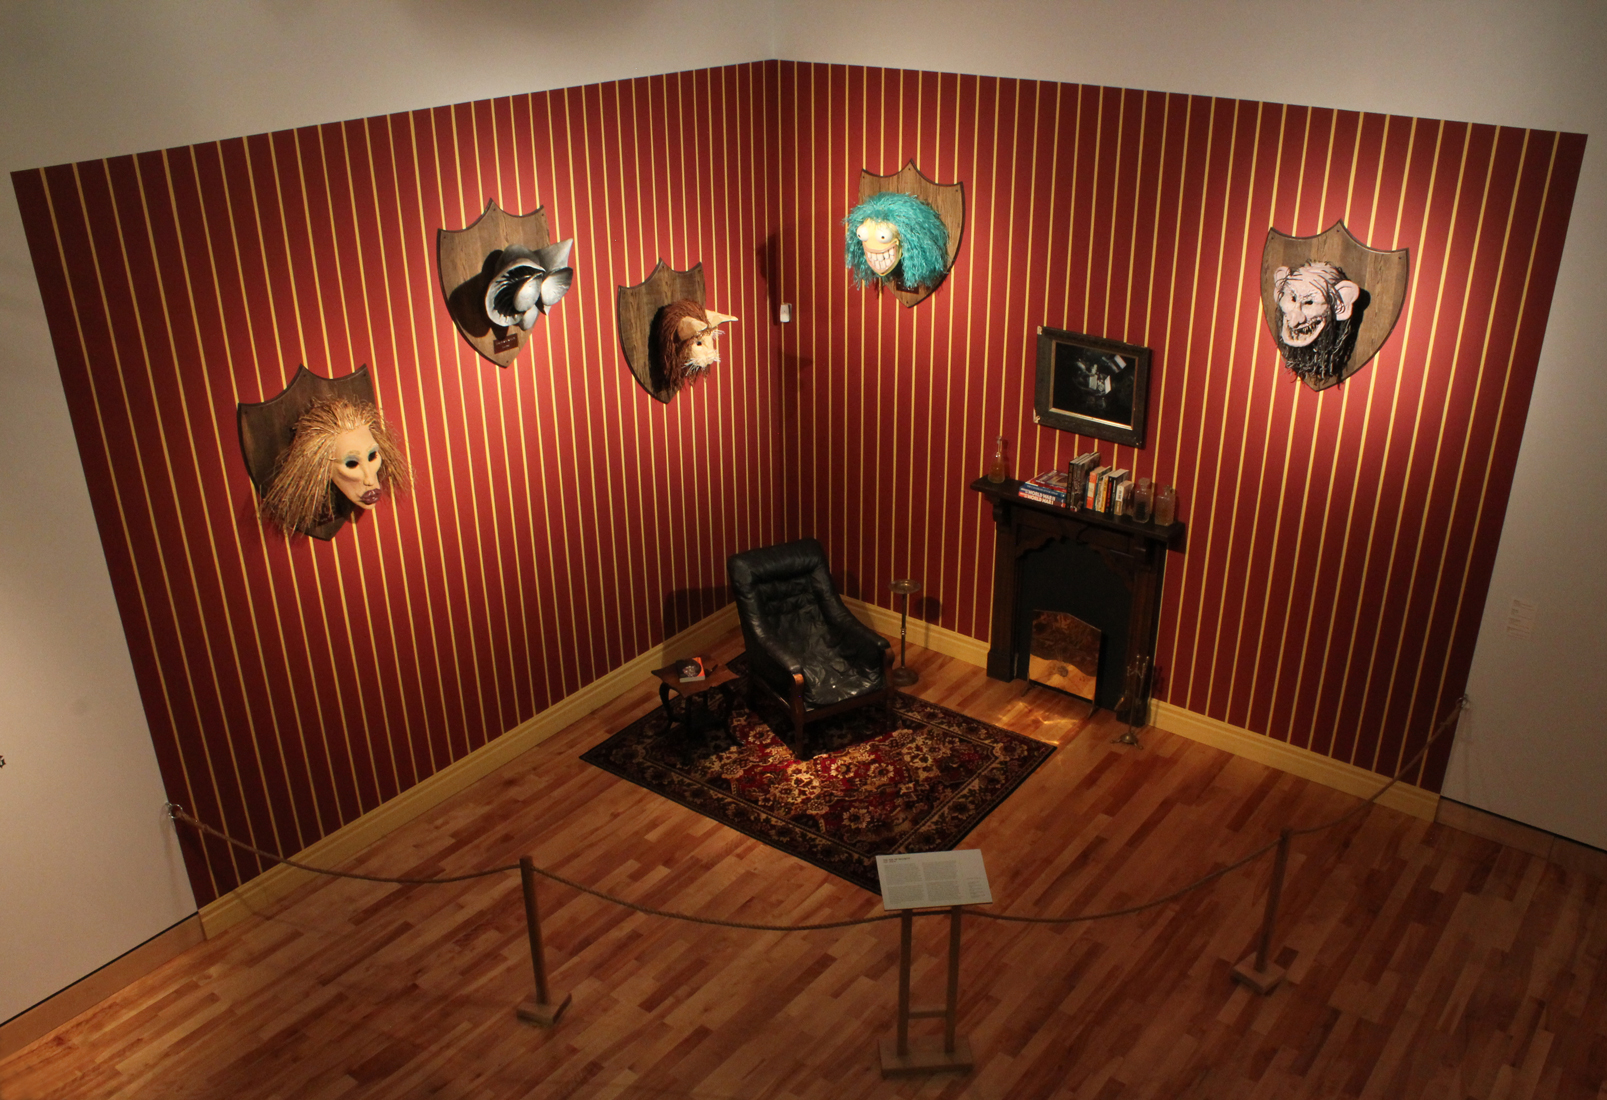 Kyle Bustin,  Digital Beasts Installation , Mixed Media, The Rooms Provincial Gallery, St. John's, NL,2014, 14'x14'